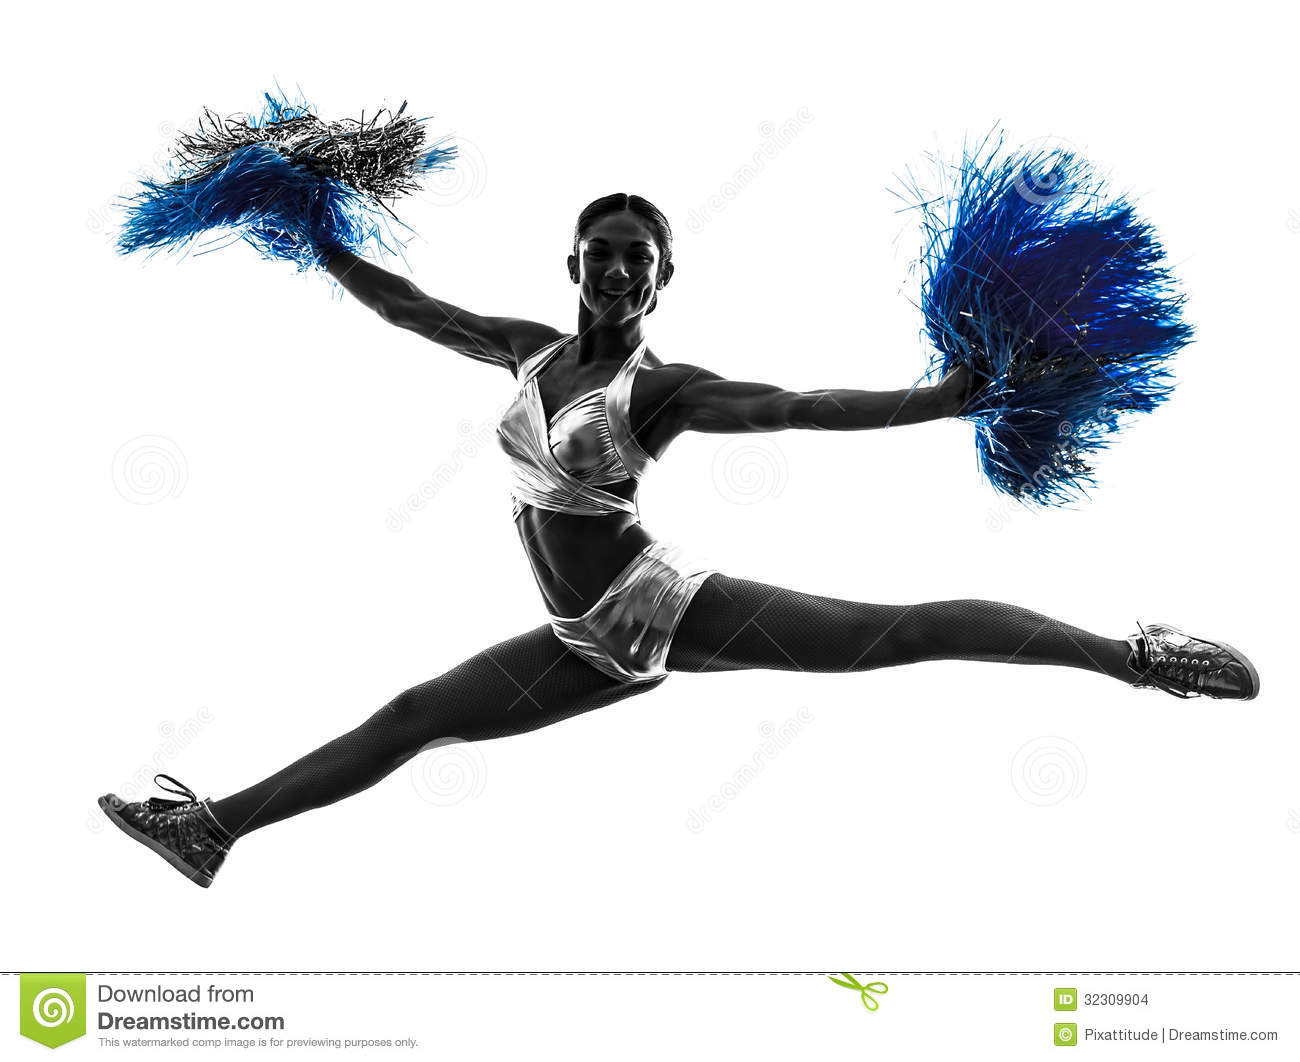 109 Cheerleader Silhouette Photos Free Royalty Free Stock Photos From Dreamstime Jumping cheerleader action silhouette vector. dreamstime com